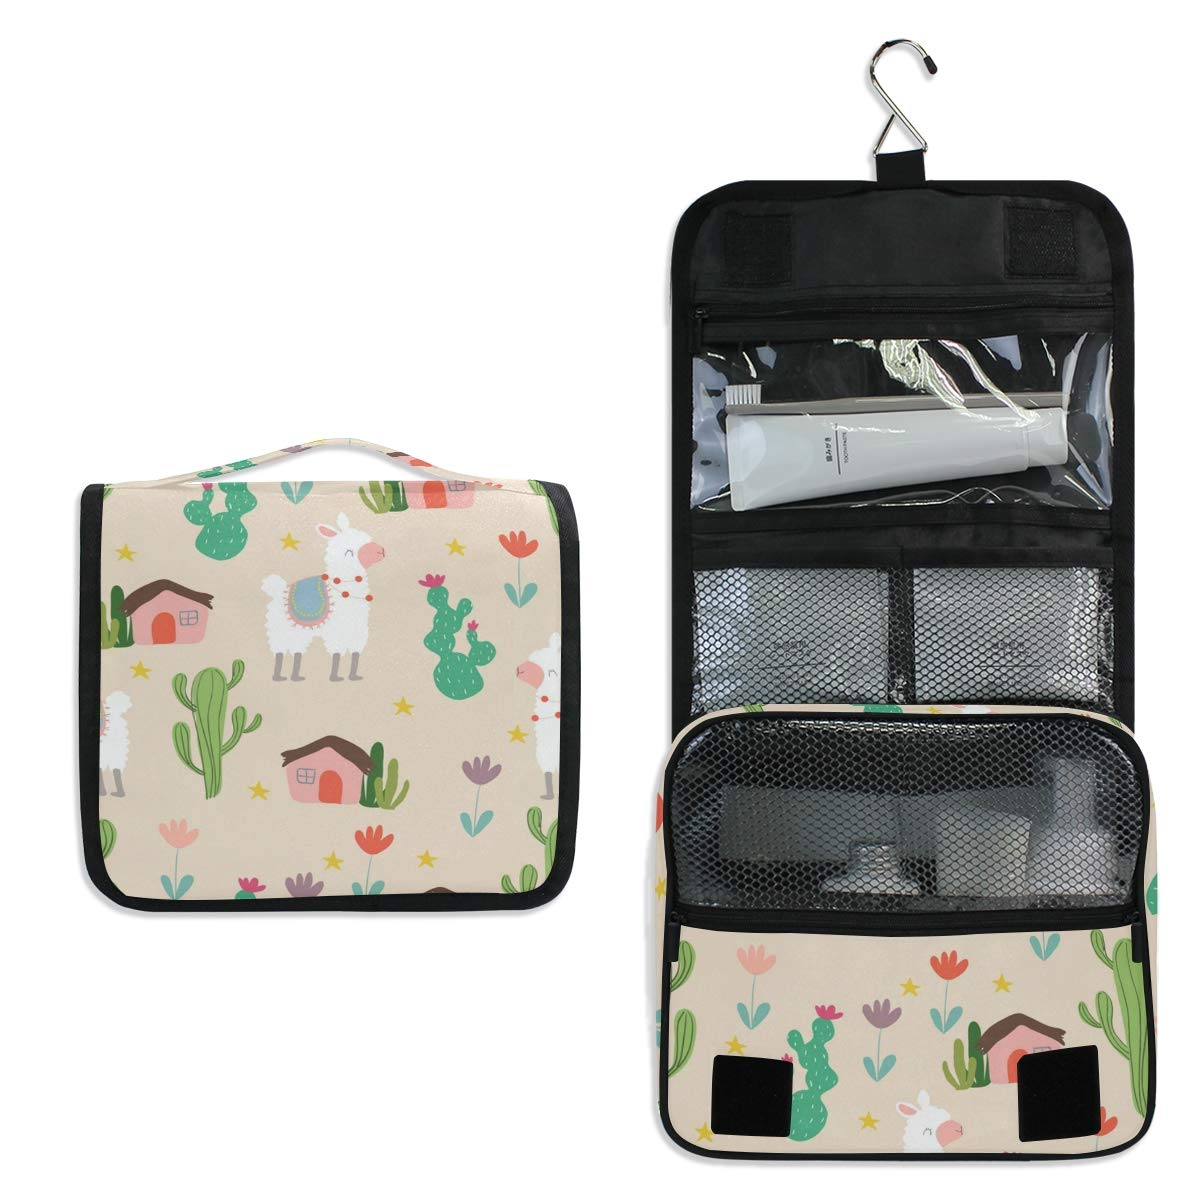 Toiletry Bag Travel Bag Hanging Hook - Llamas Cactus House Waterproof Cosmetic Bag Portable Makeup Pouch for Travelling Business Trip Camping